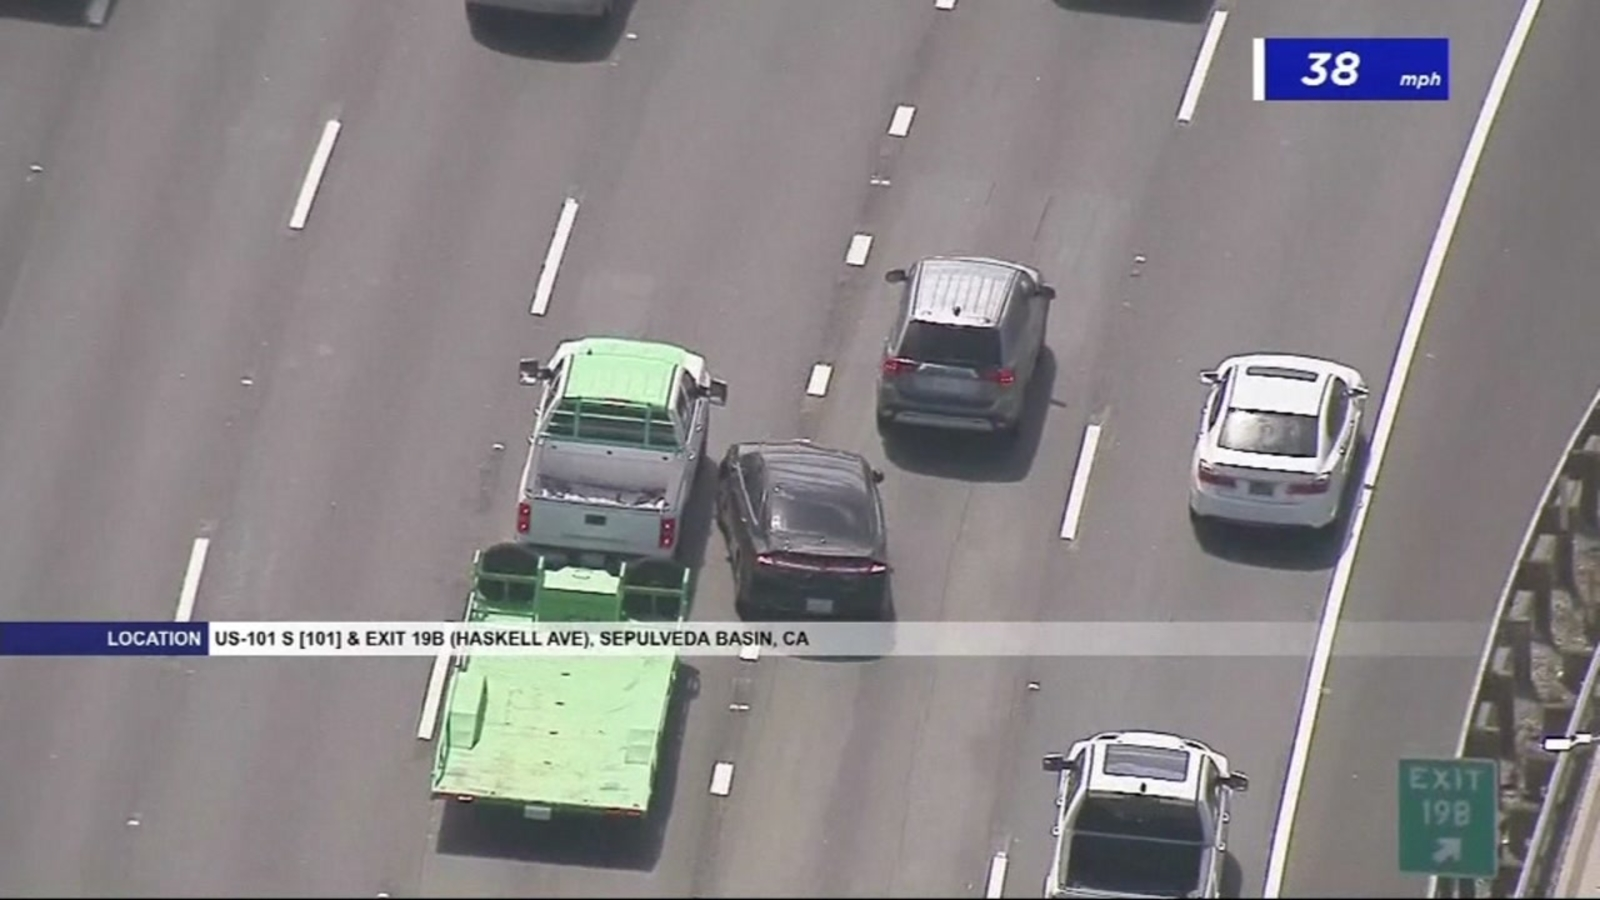 Suspects from Bay Area arrested after high-speed chase in LA area